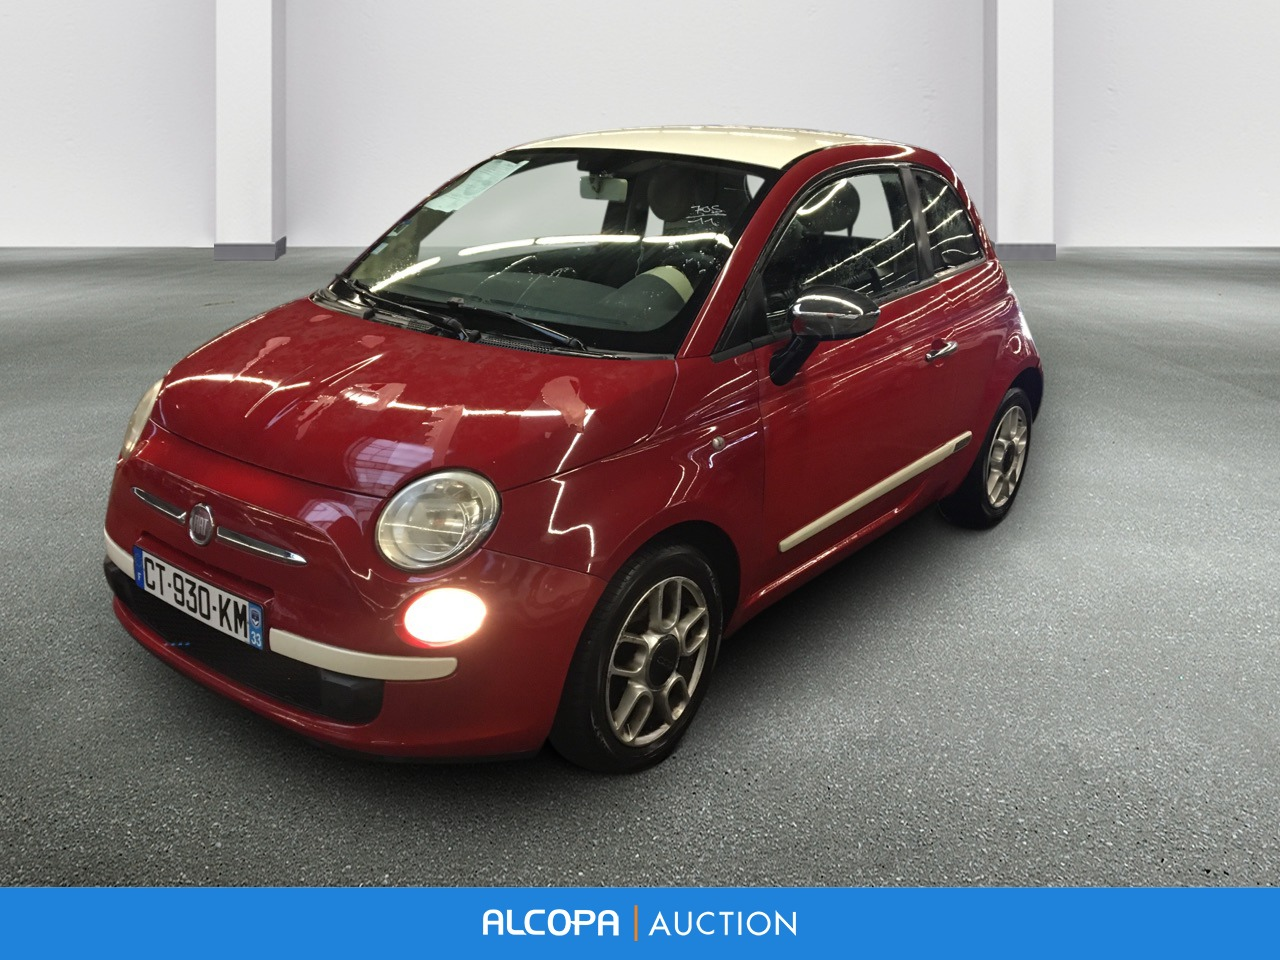 fiat 500 500 1 2 8v 69 ch 500 alcopa auction. Black Bedroom Furniture Sets. Home Design Ideas